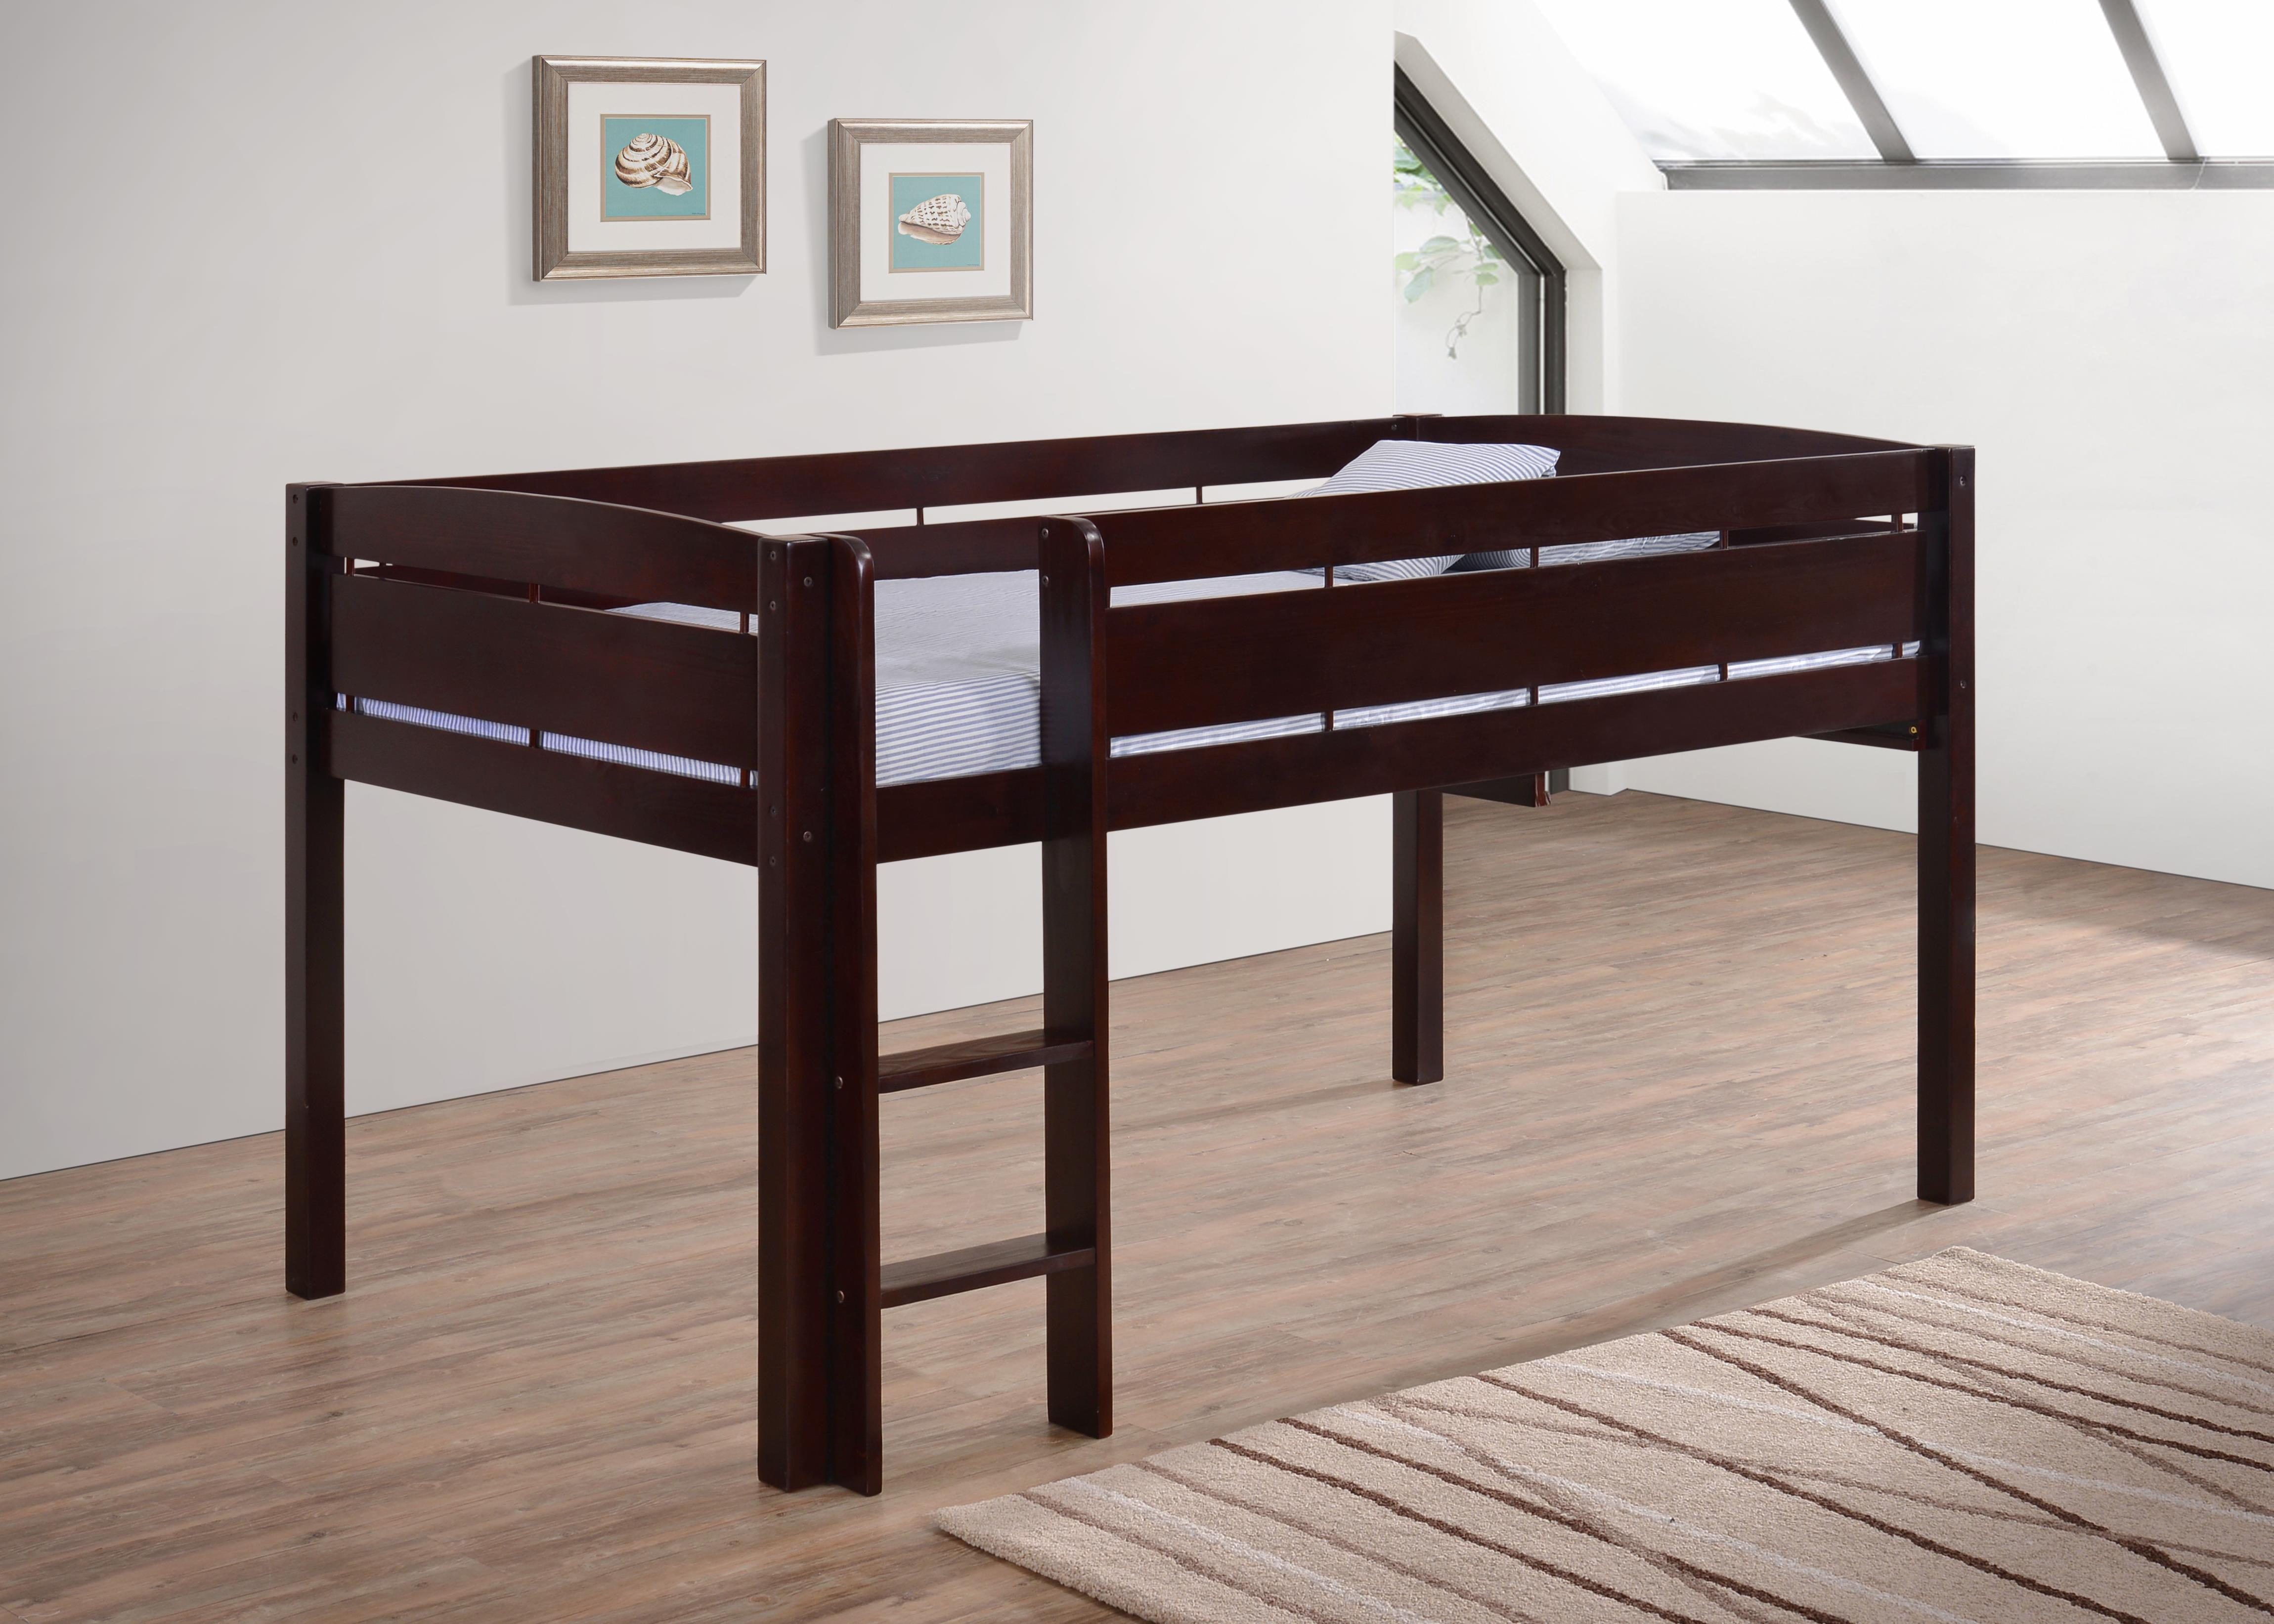 Endearing Canwood Loft Bed | Enticing Canwood Tools Idea